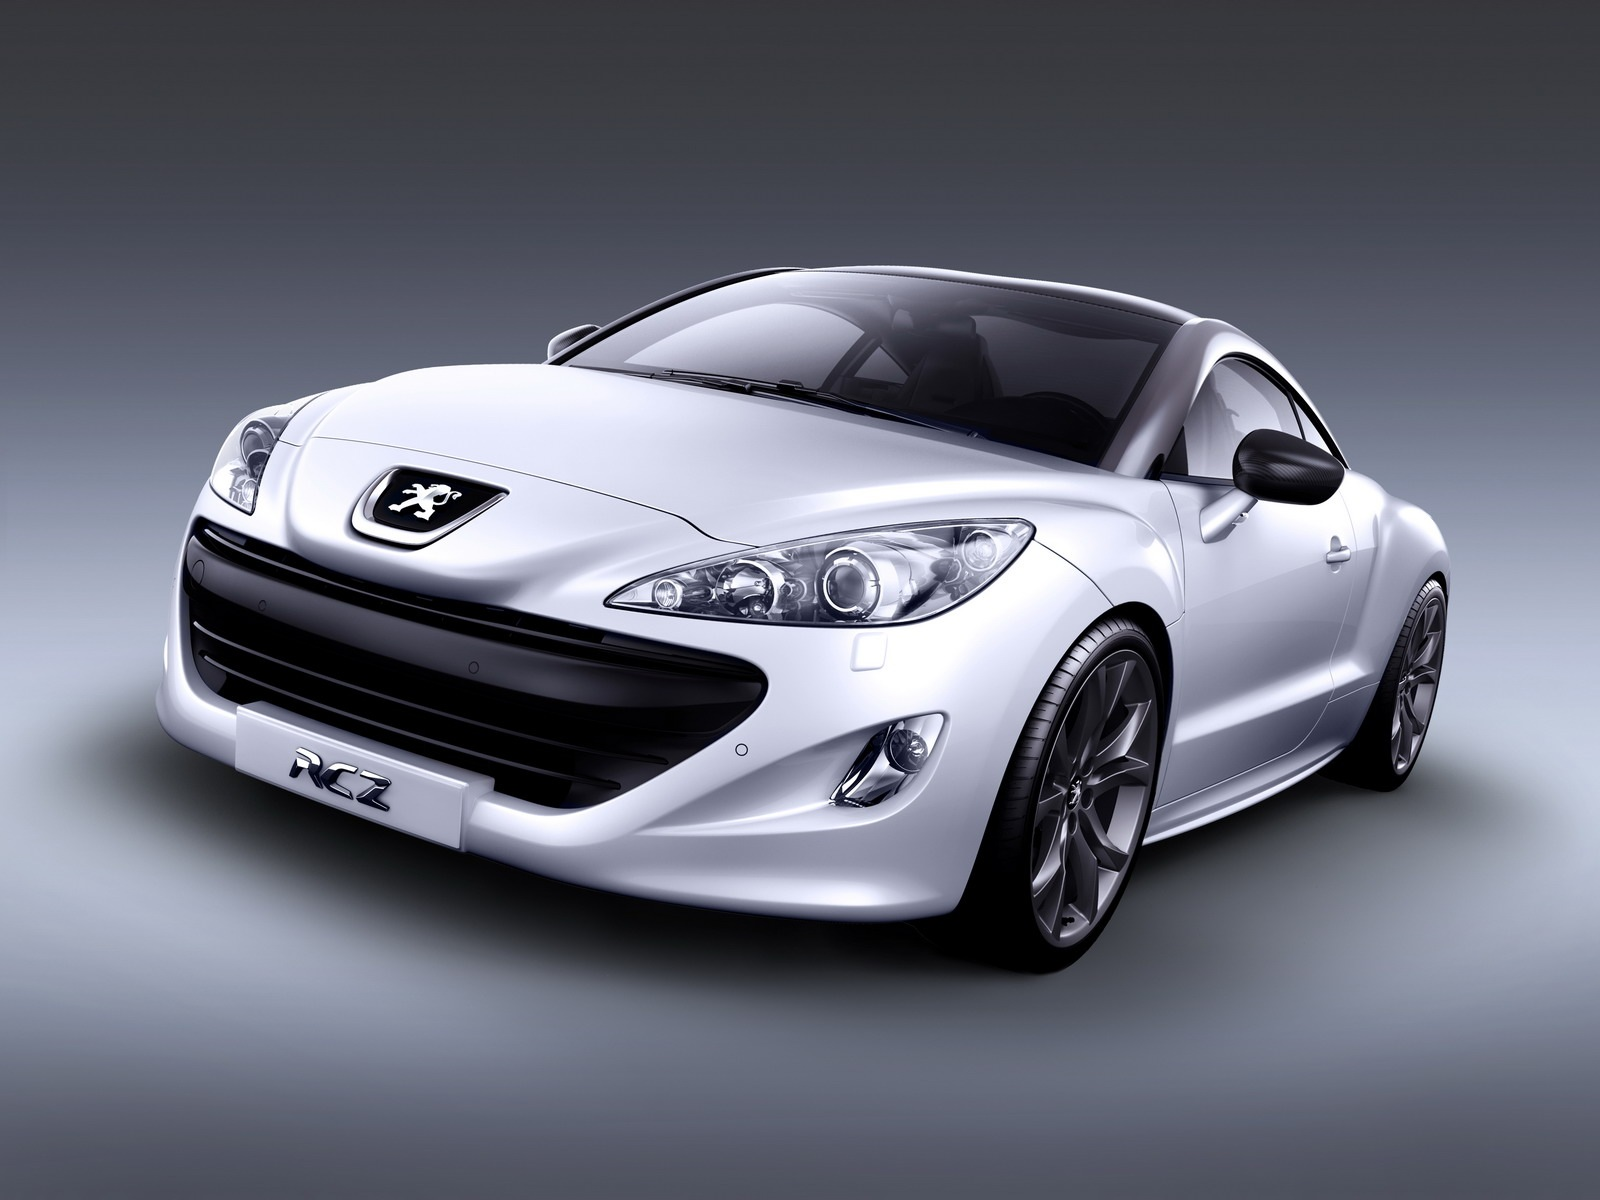 kendall self drive 2011 peugeot rcz sports coupe review. Black Bedroom Furniture Sets. Home Design Ideas